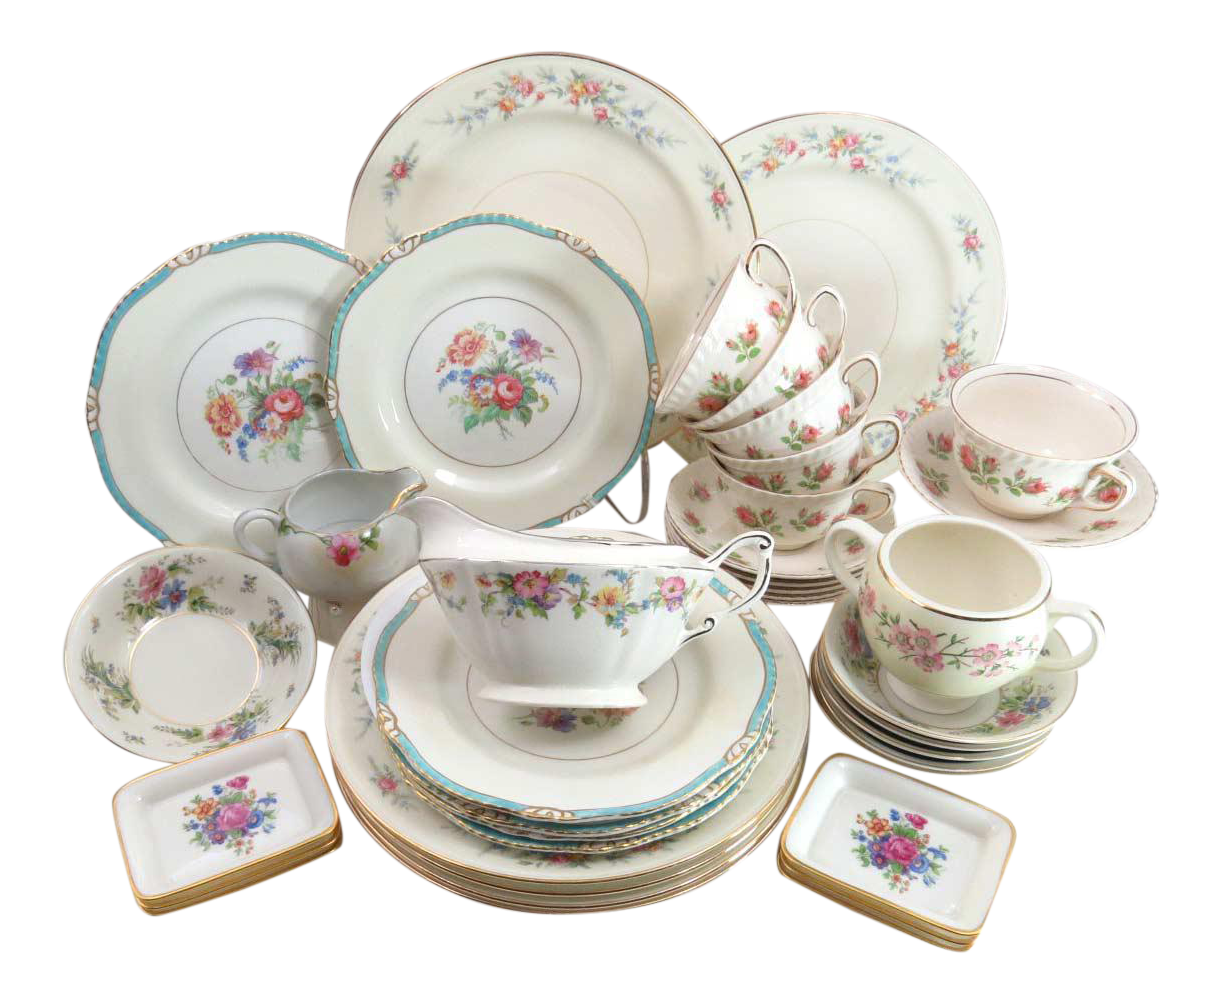 Vintage Mismatched Dinnerware Set Service for 6  sc 1 st  Chairish & Vintage Mismatched Dinnerware Set Service for 6 | Chairish